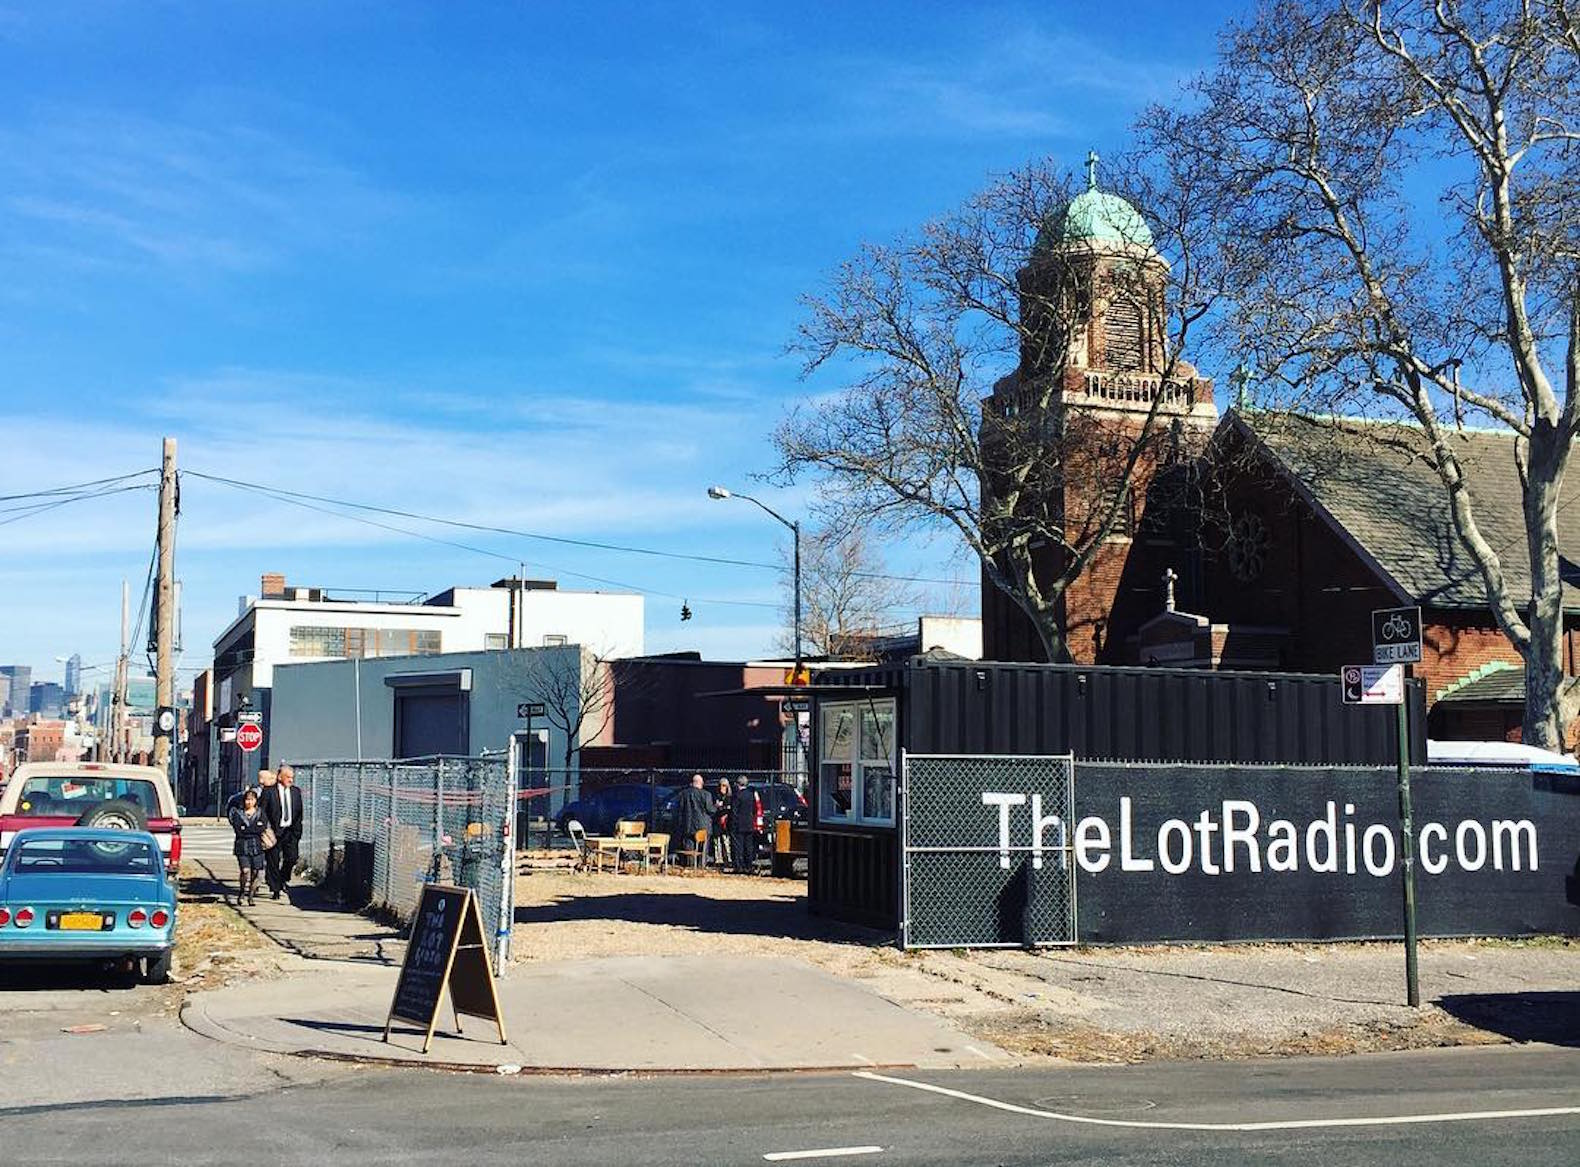 Reclaimed shipping container radio station pops up in Greenpoint